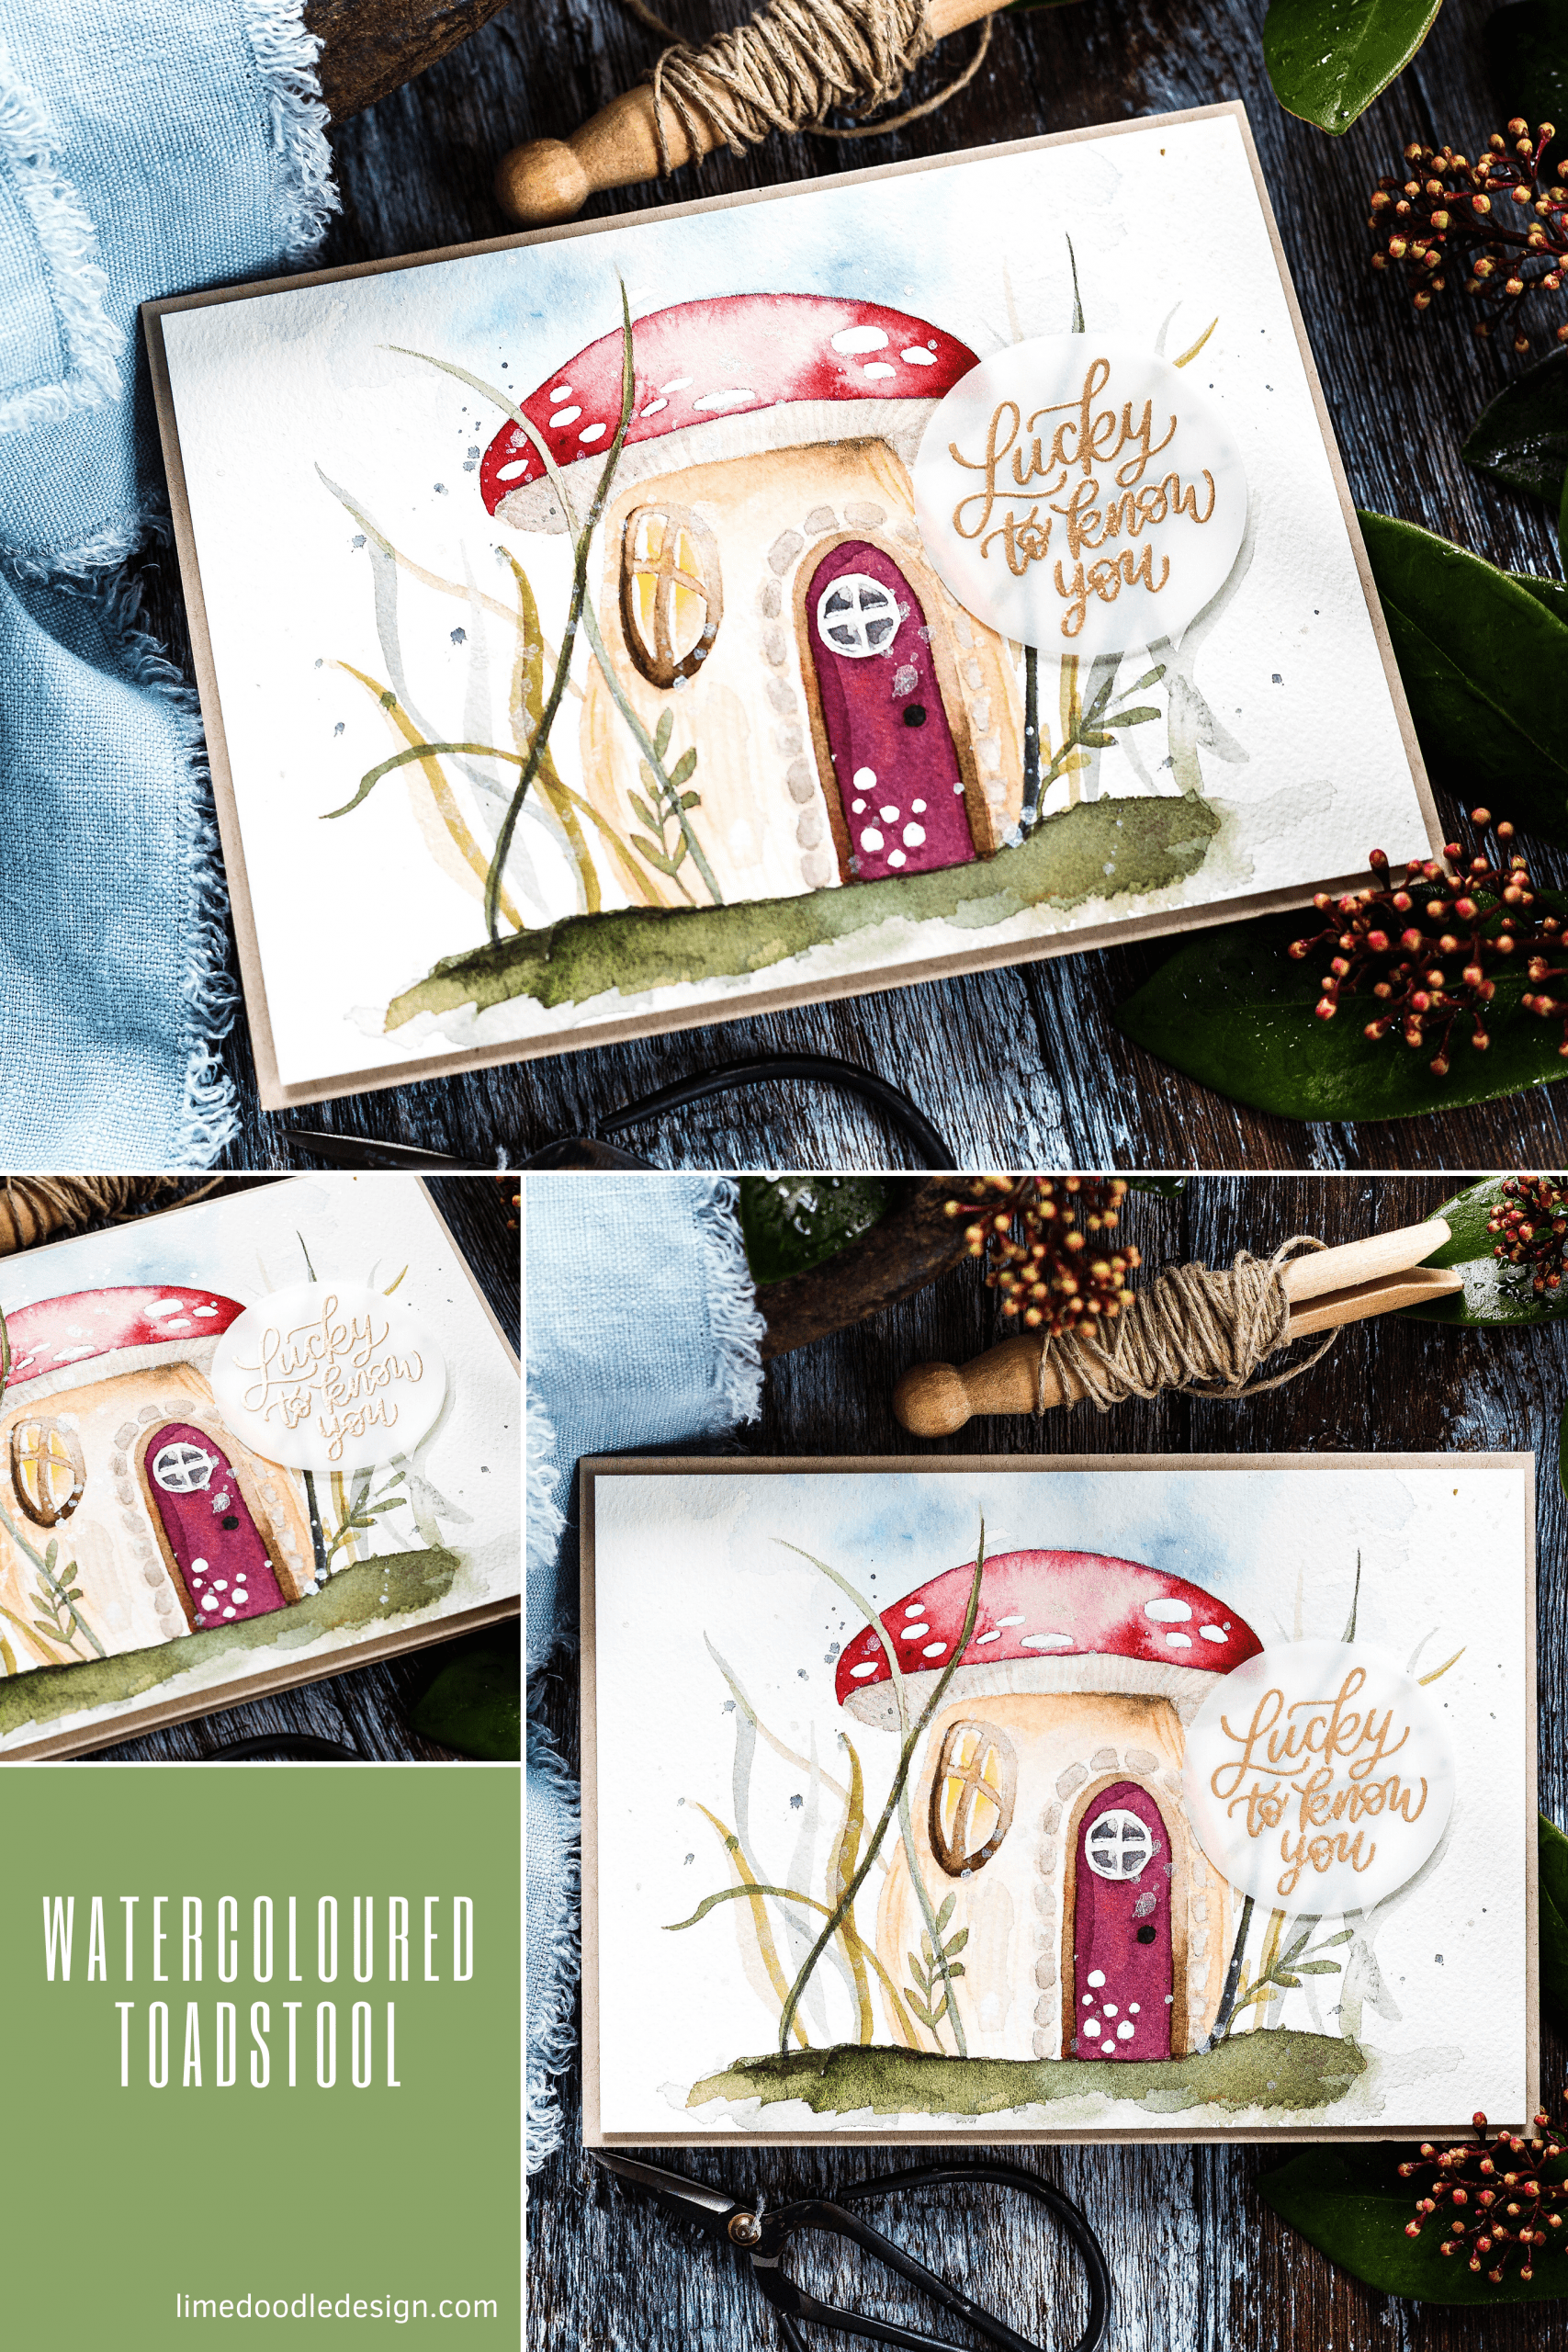 I used an adorable Mushroom House stencil when painting this card! Such cute details you can add to make the toadstool homely. Handmade card by Debby Hughes #homemade #handmade #watercolor